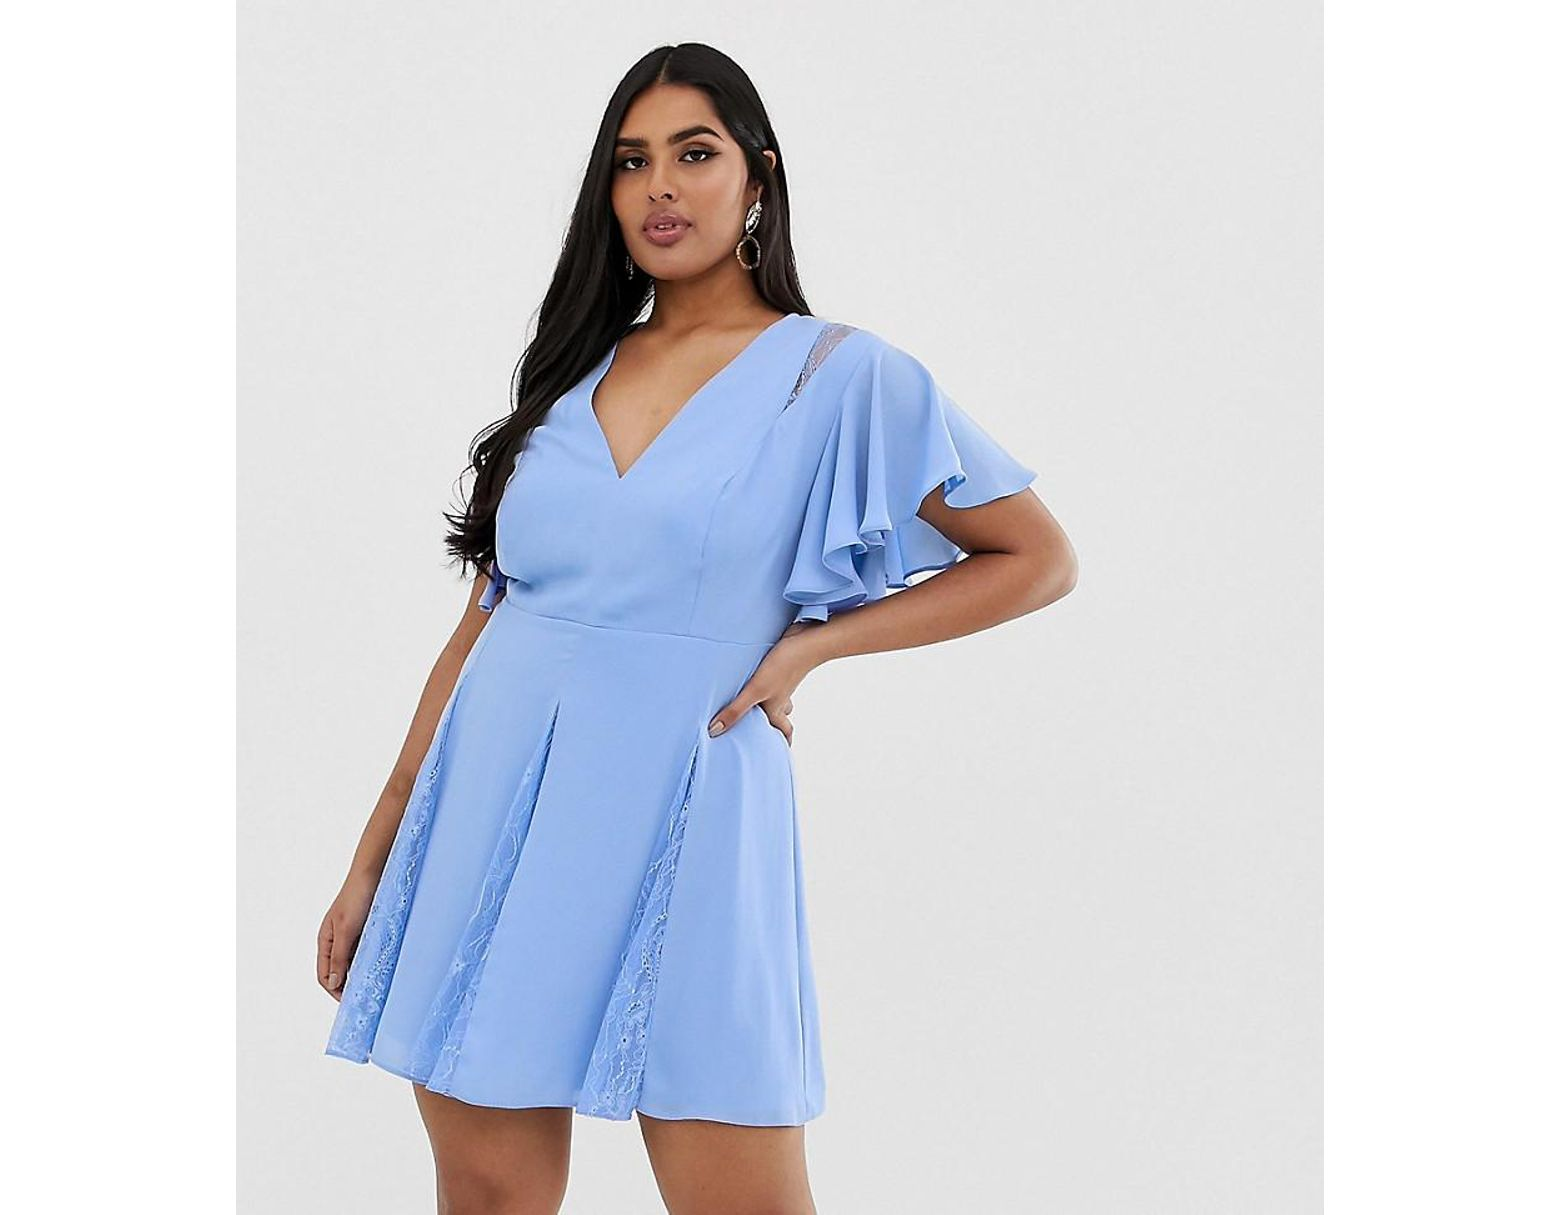 b2bbaeff7deb8 ASOS Asos Design Curve Mini Dress With Godet Lace Inserts in Blue - Lyst